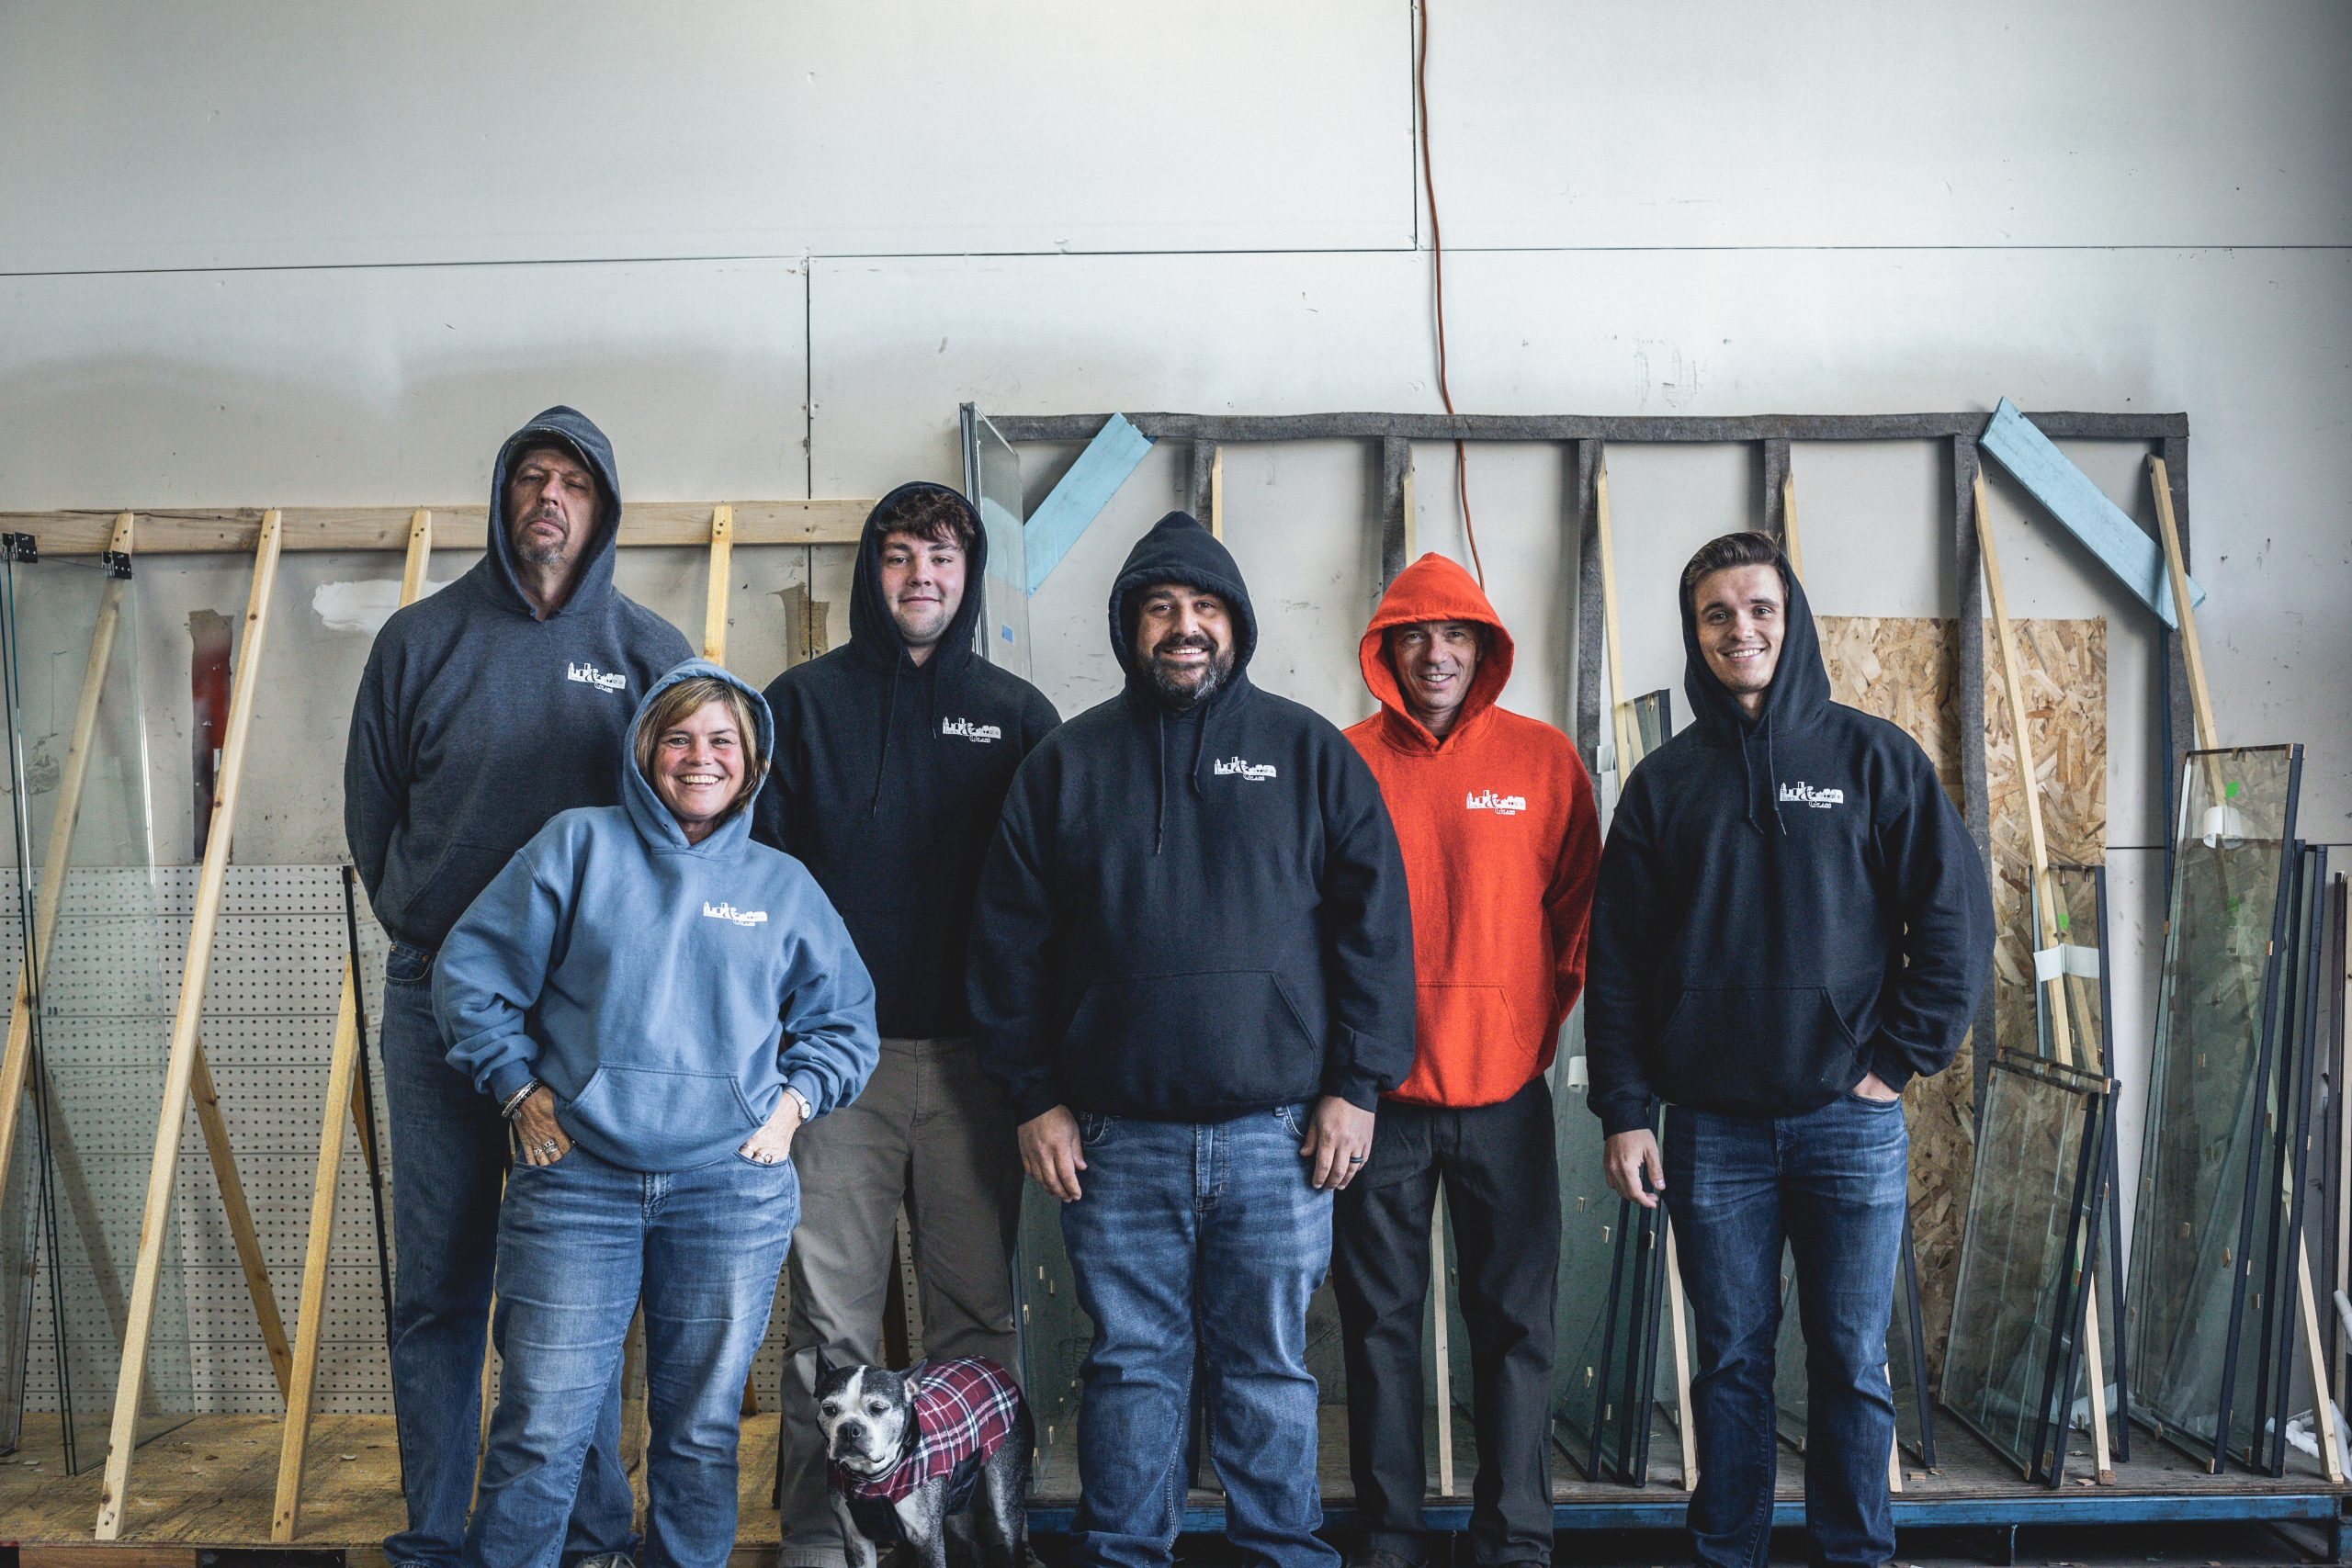 The Oregon City window screen repair crew at T&C Glass